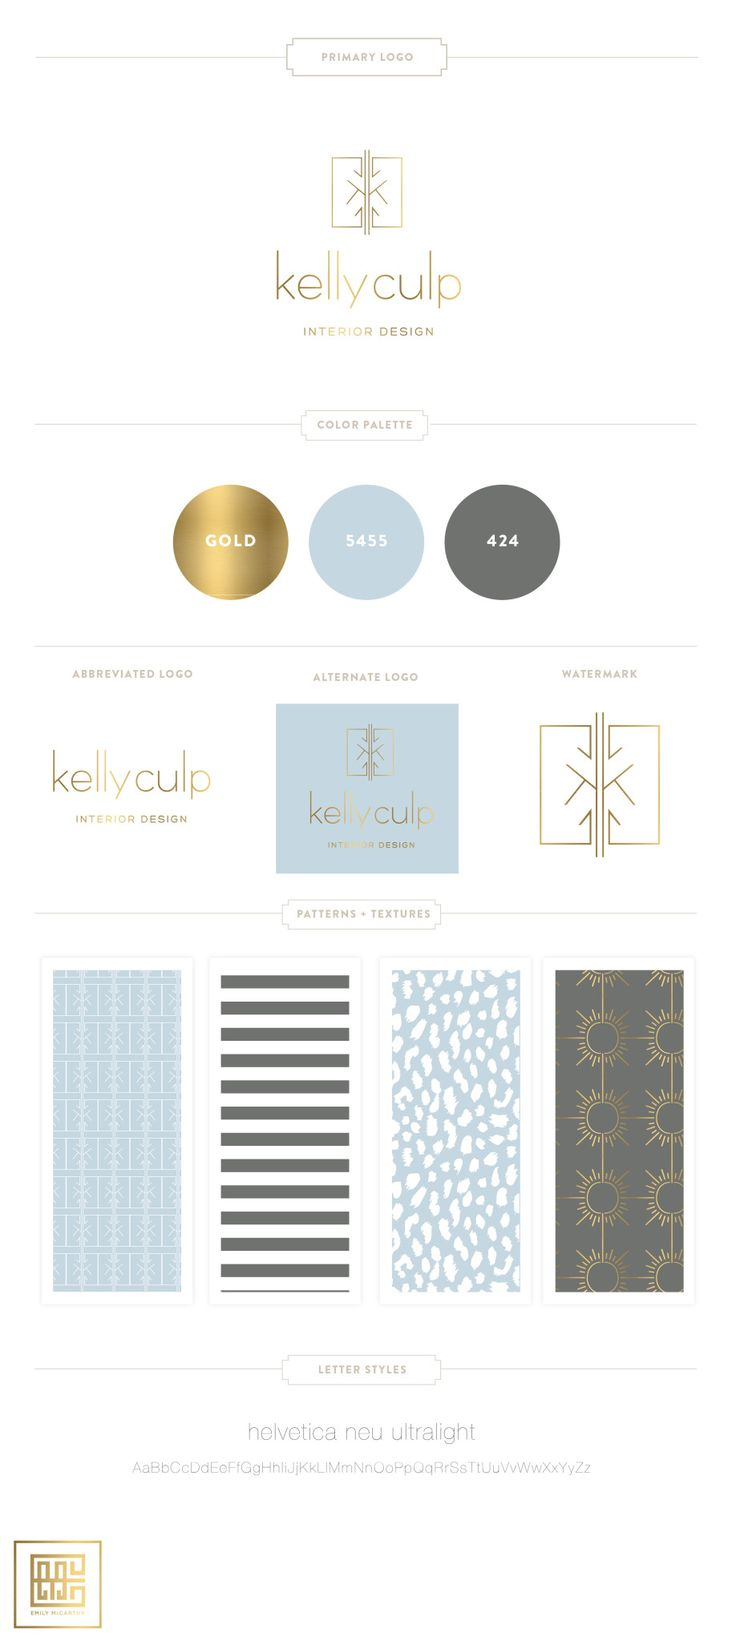 Interior Design Templates PSDVectorsPNG Images free